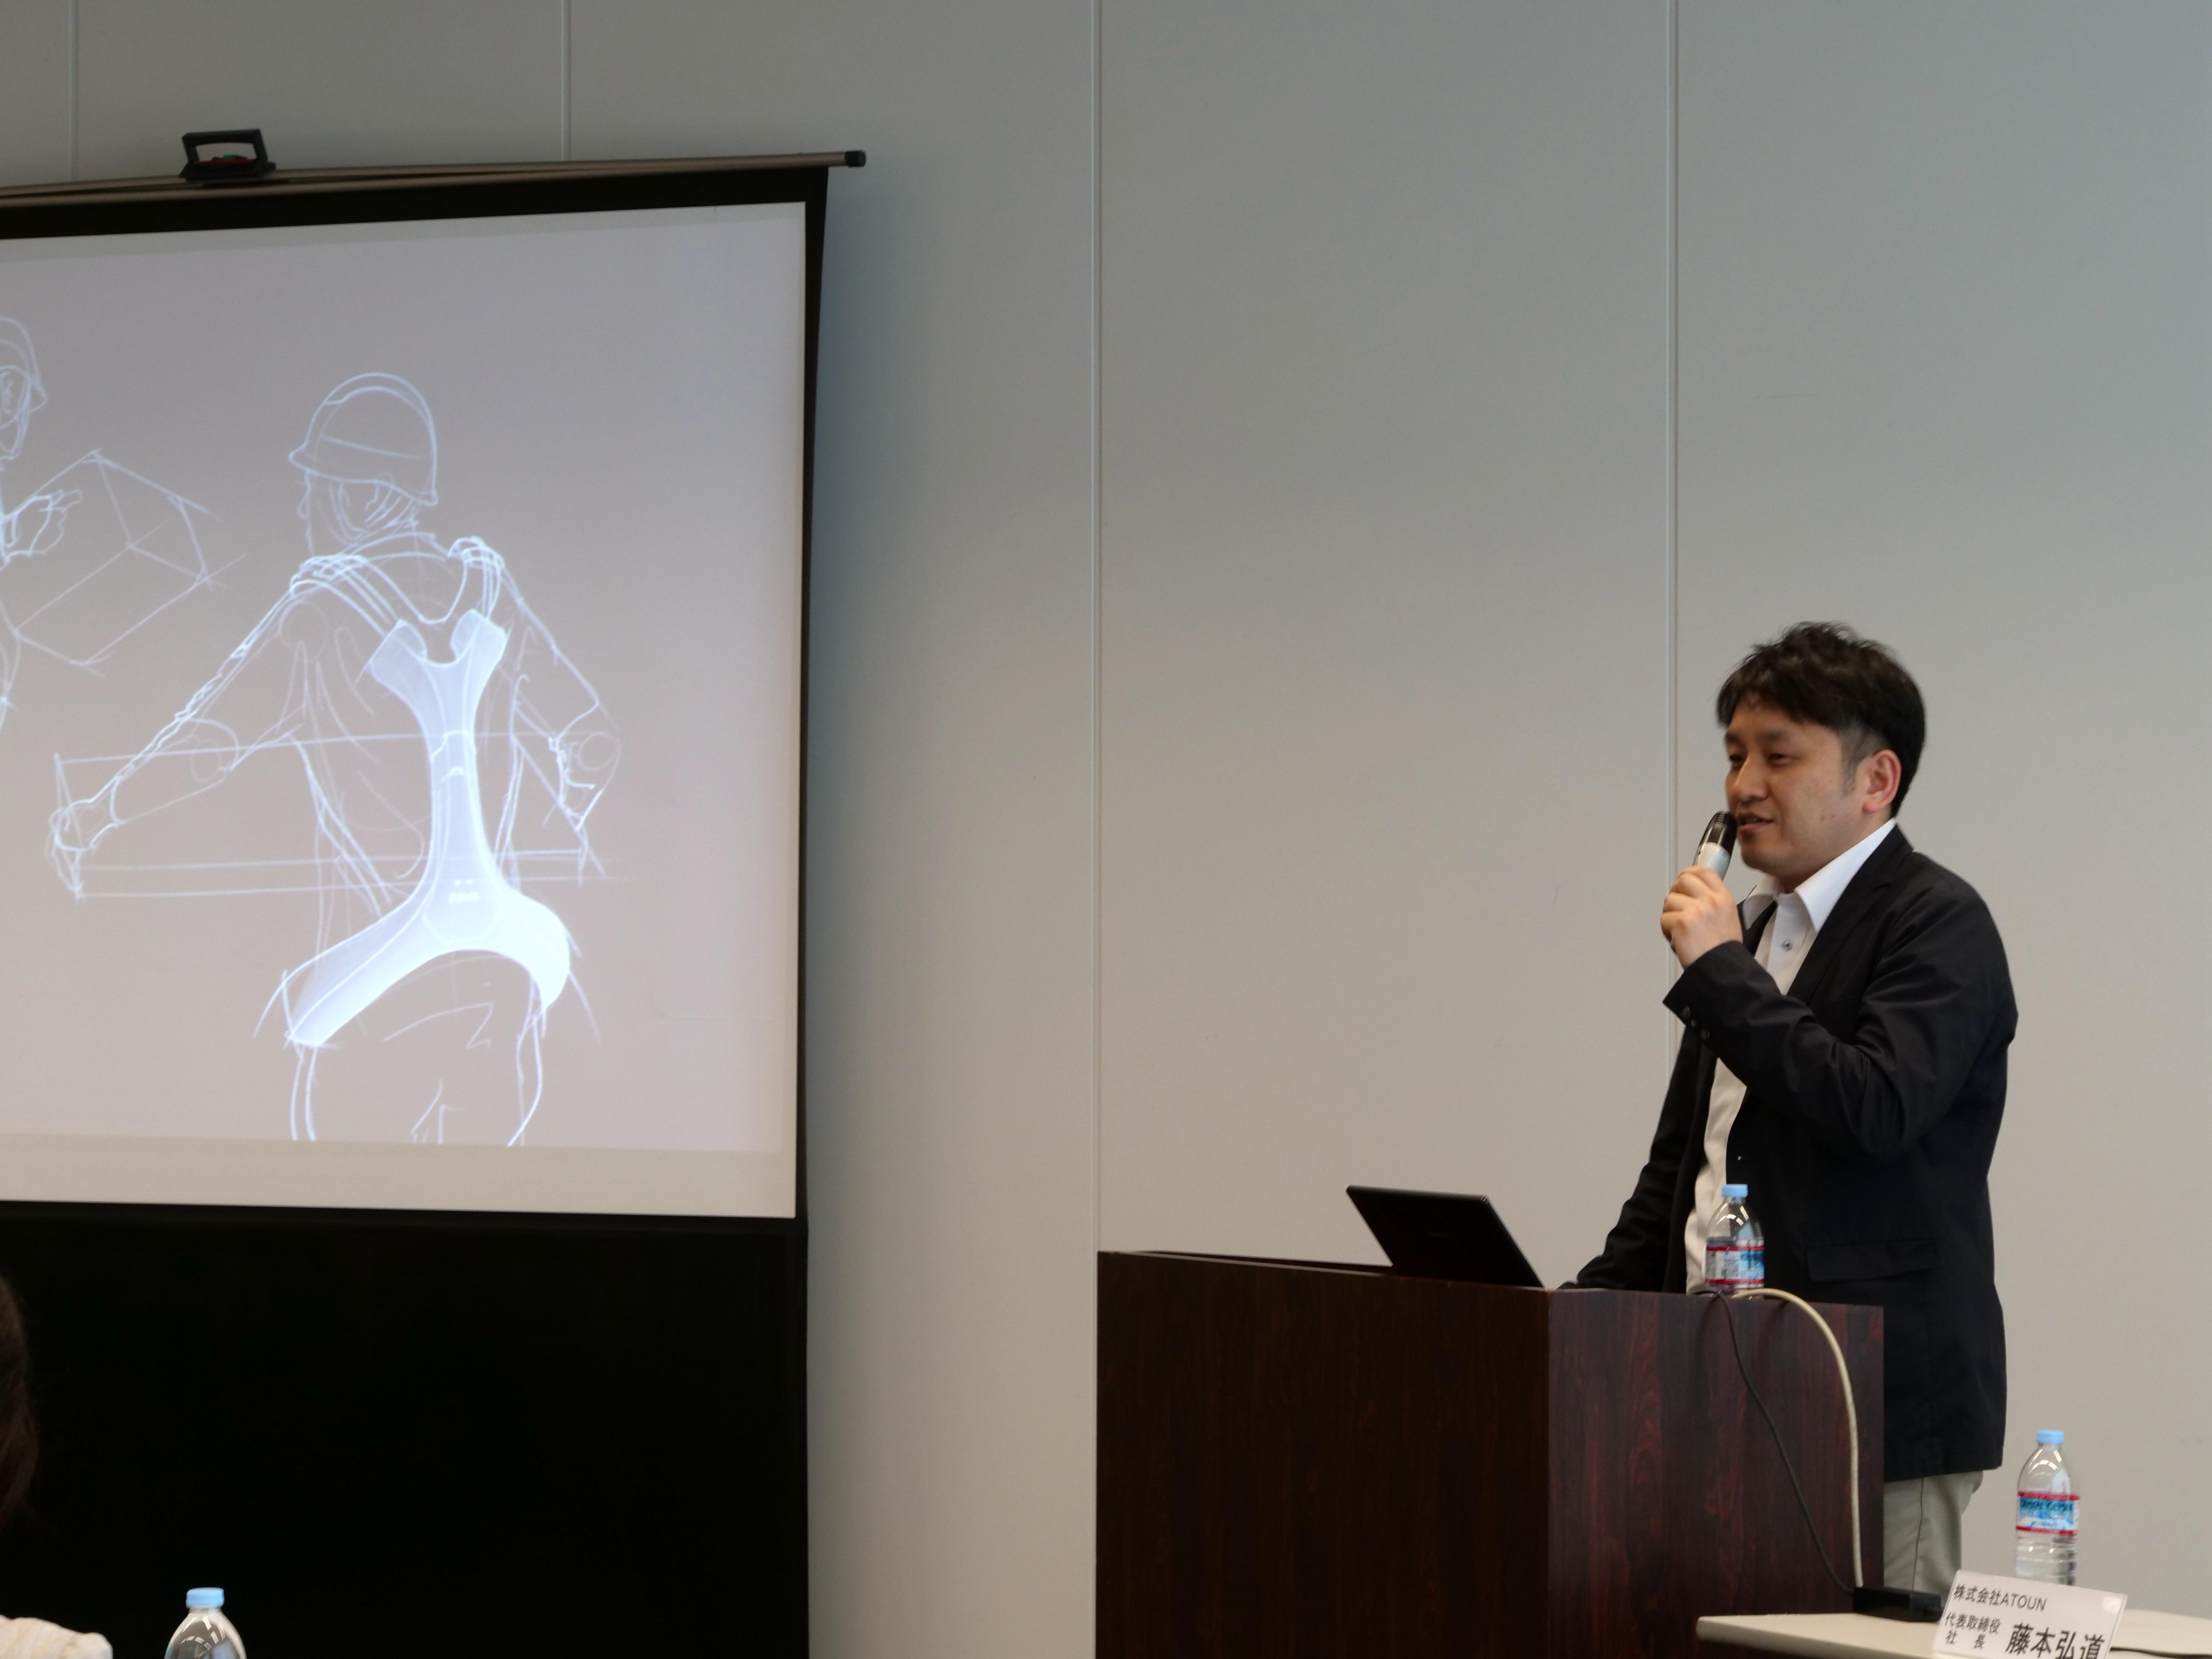 photo: Hiromichi Fujimoto, the founder and President of ATOUN at the announcement